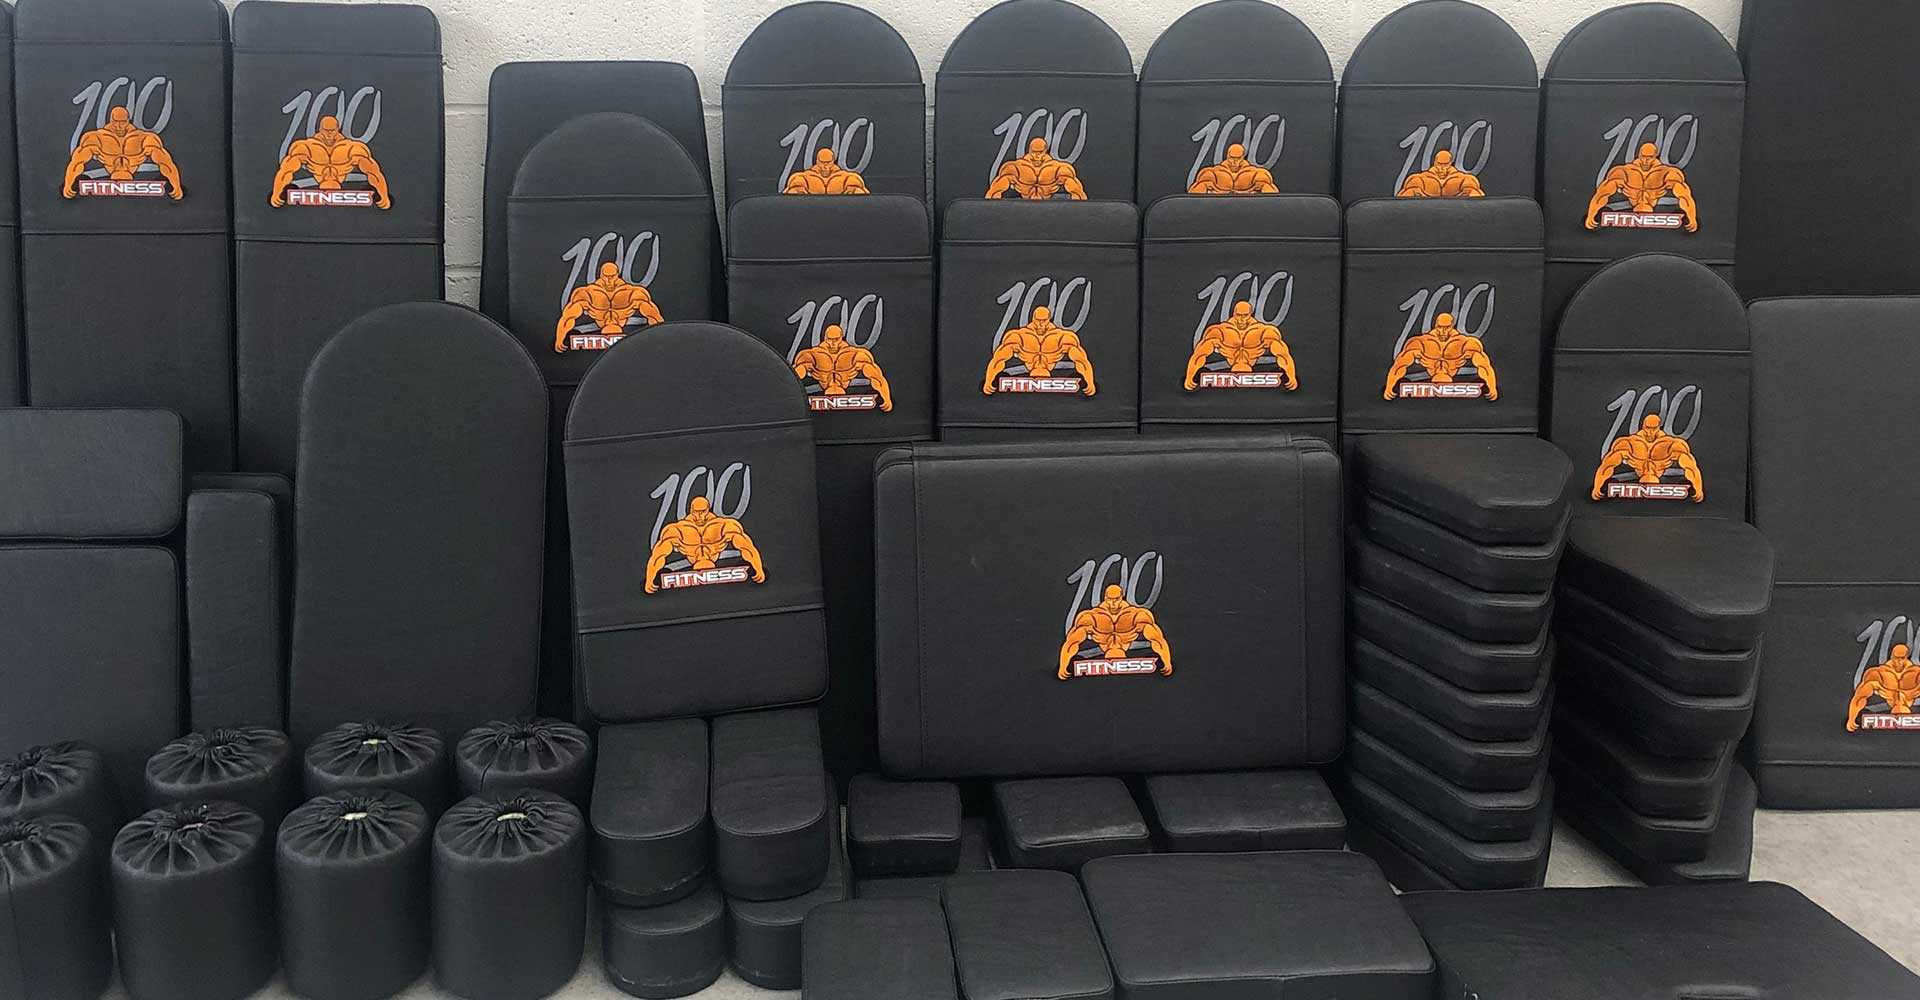 Gym Pad Manufacture